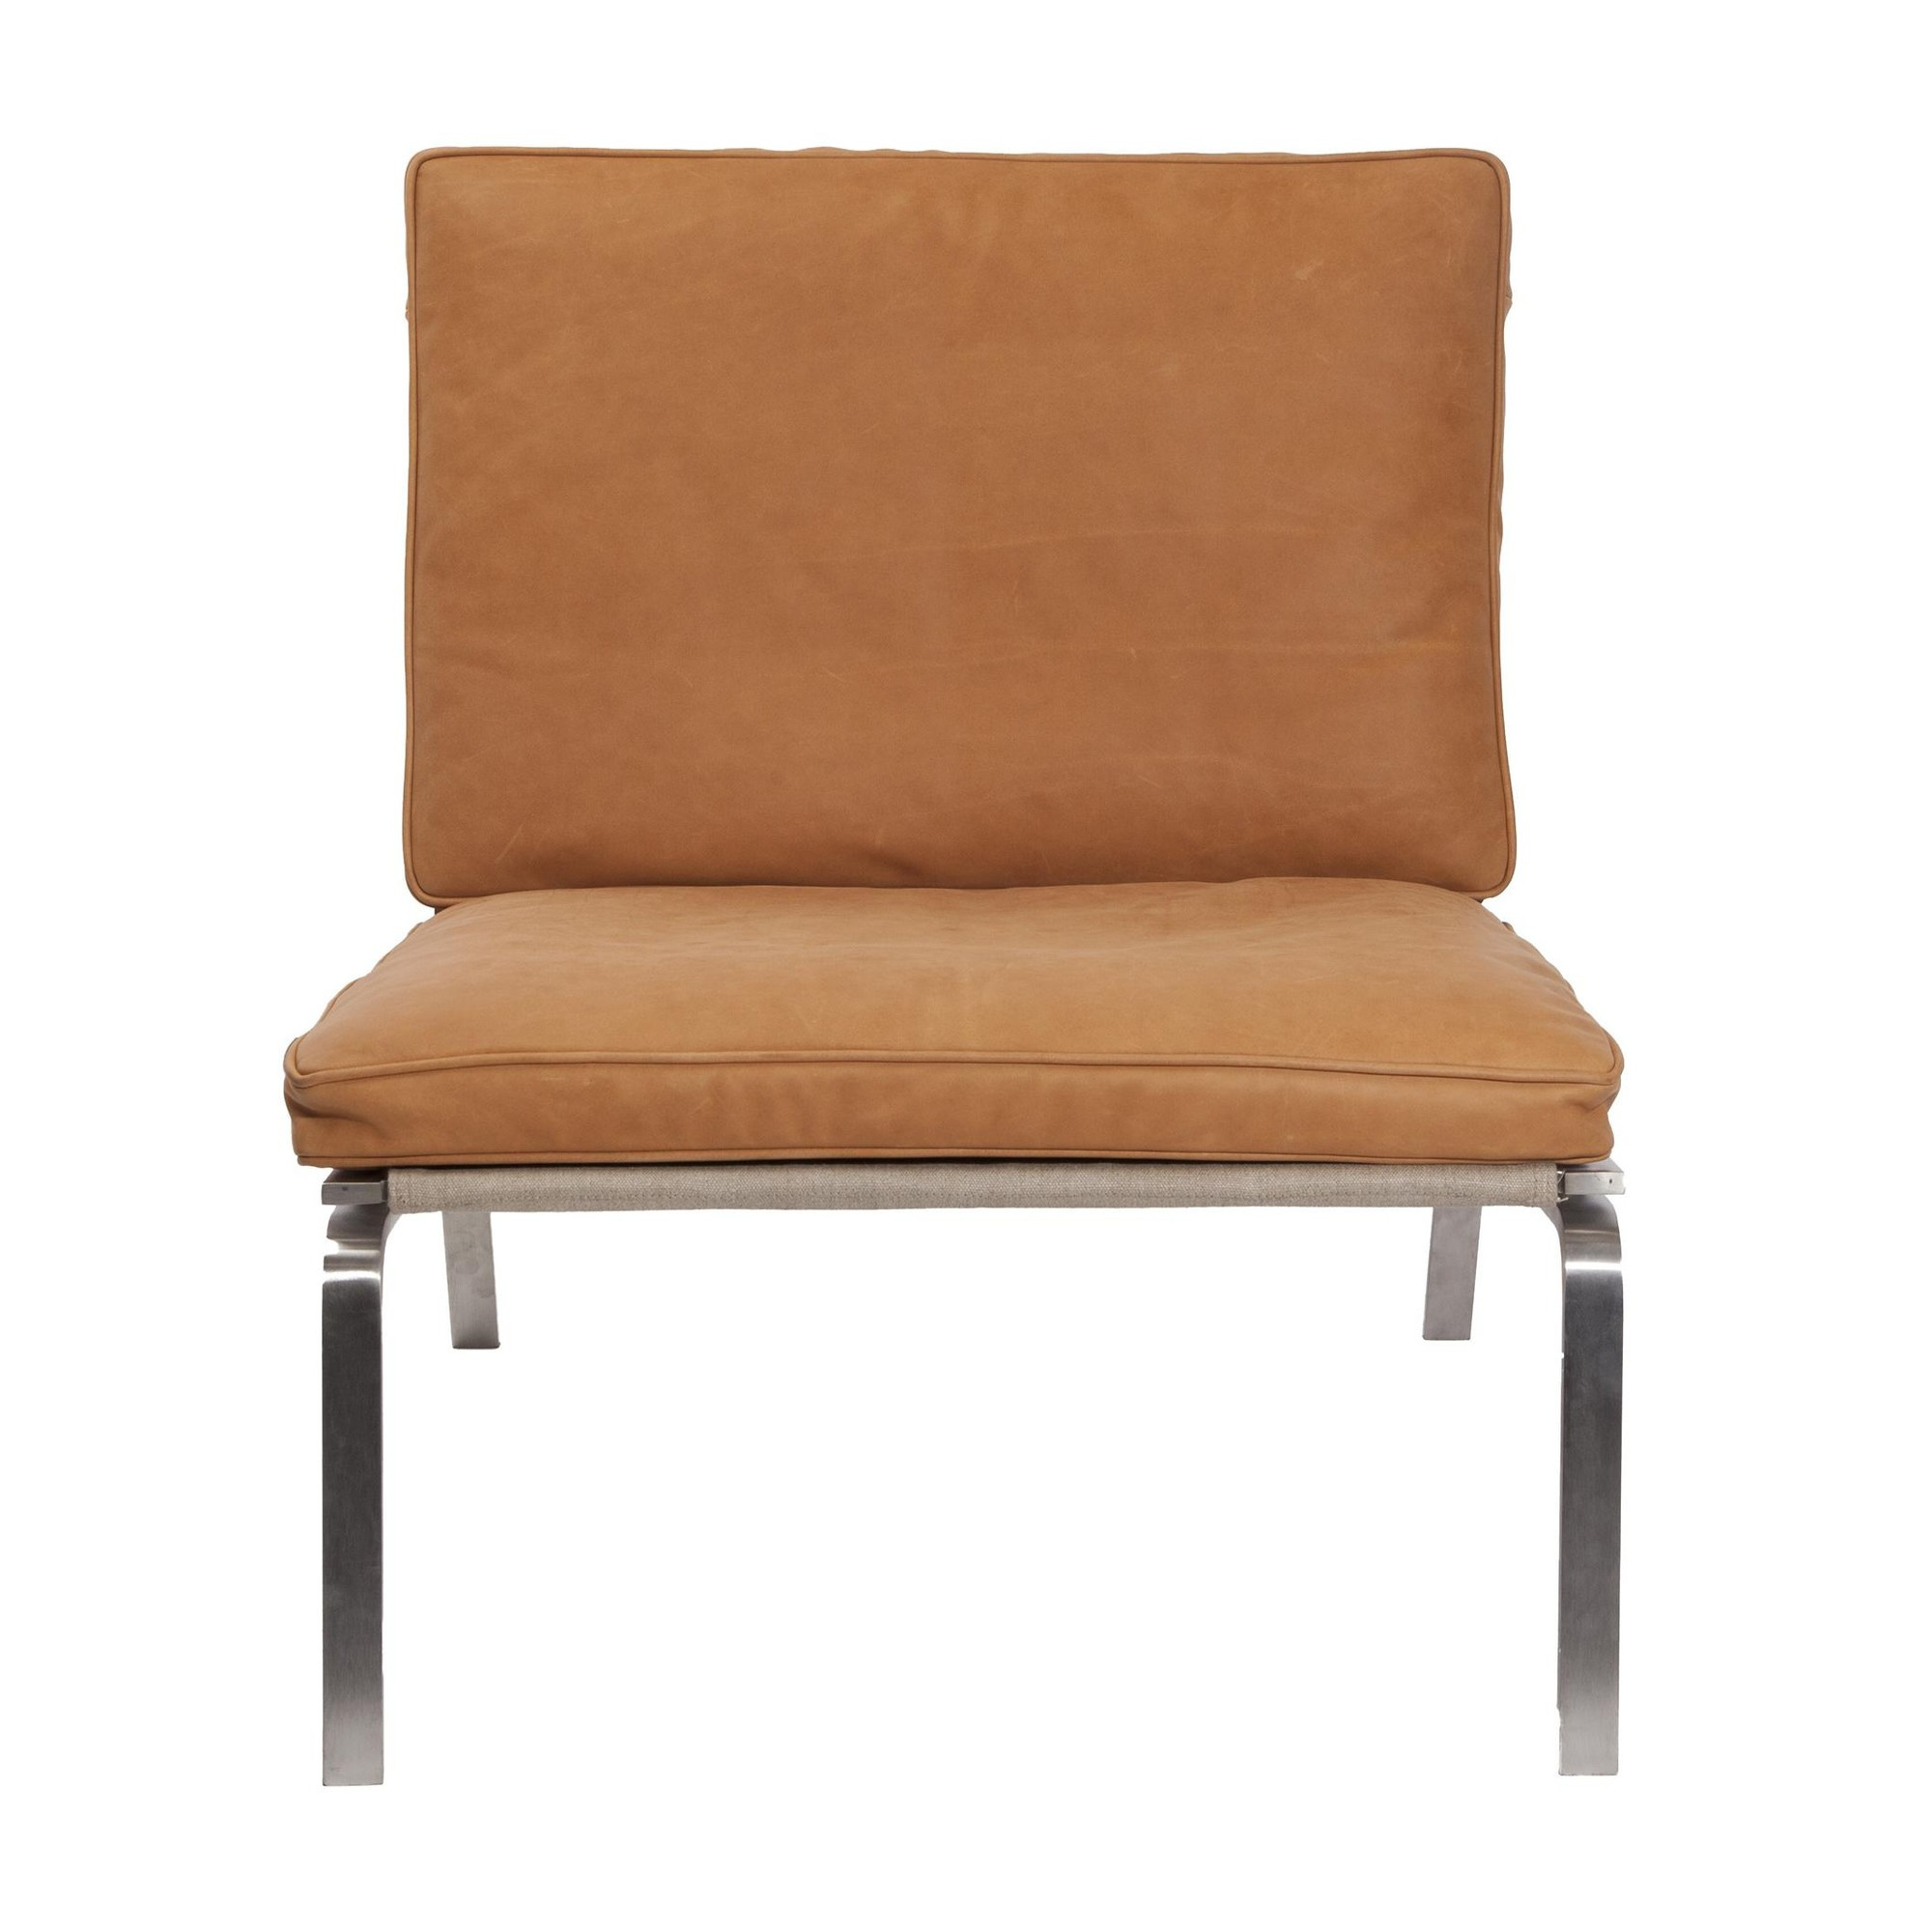 Chair Sessel Man Lounge Chair Sessel